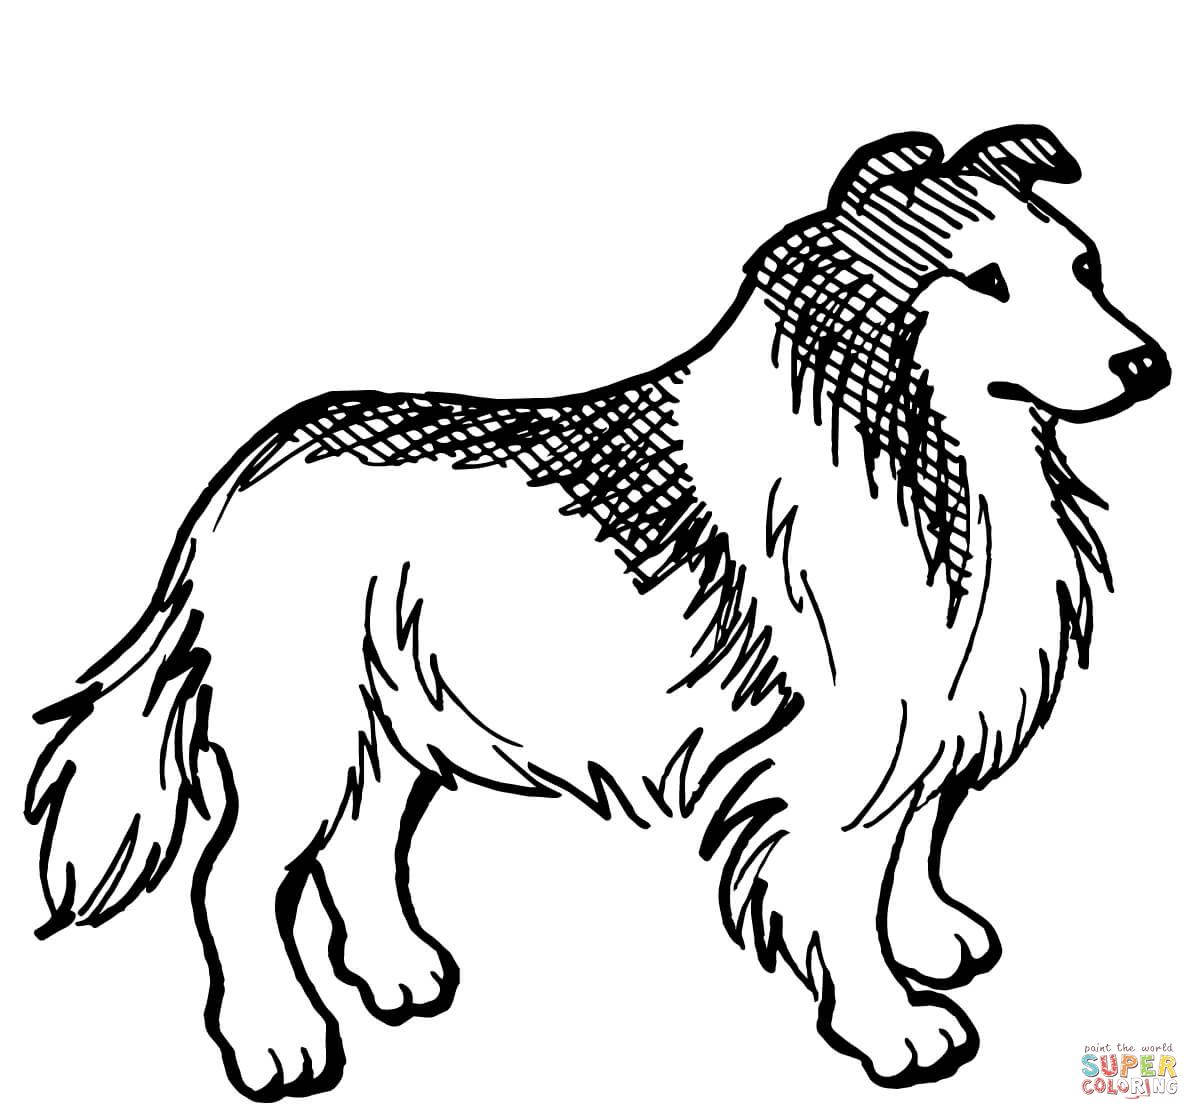 Rough Collie Dog Dog Coloring Page Dog Coloring Book Collie Dog